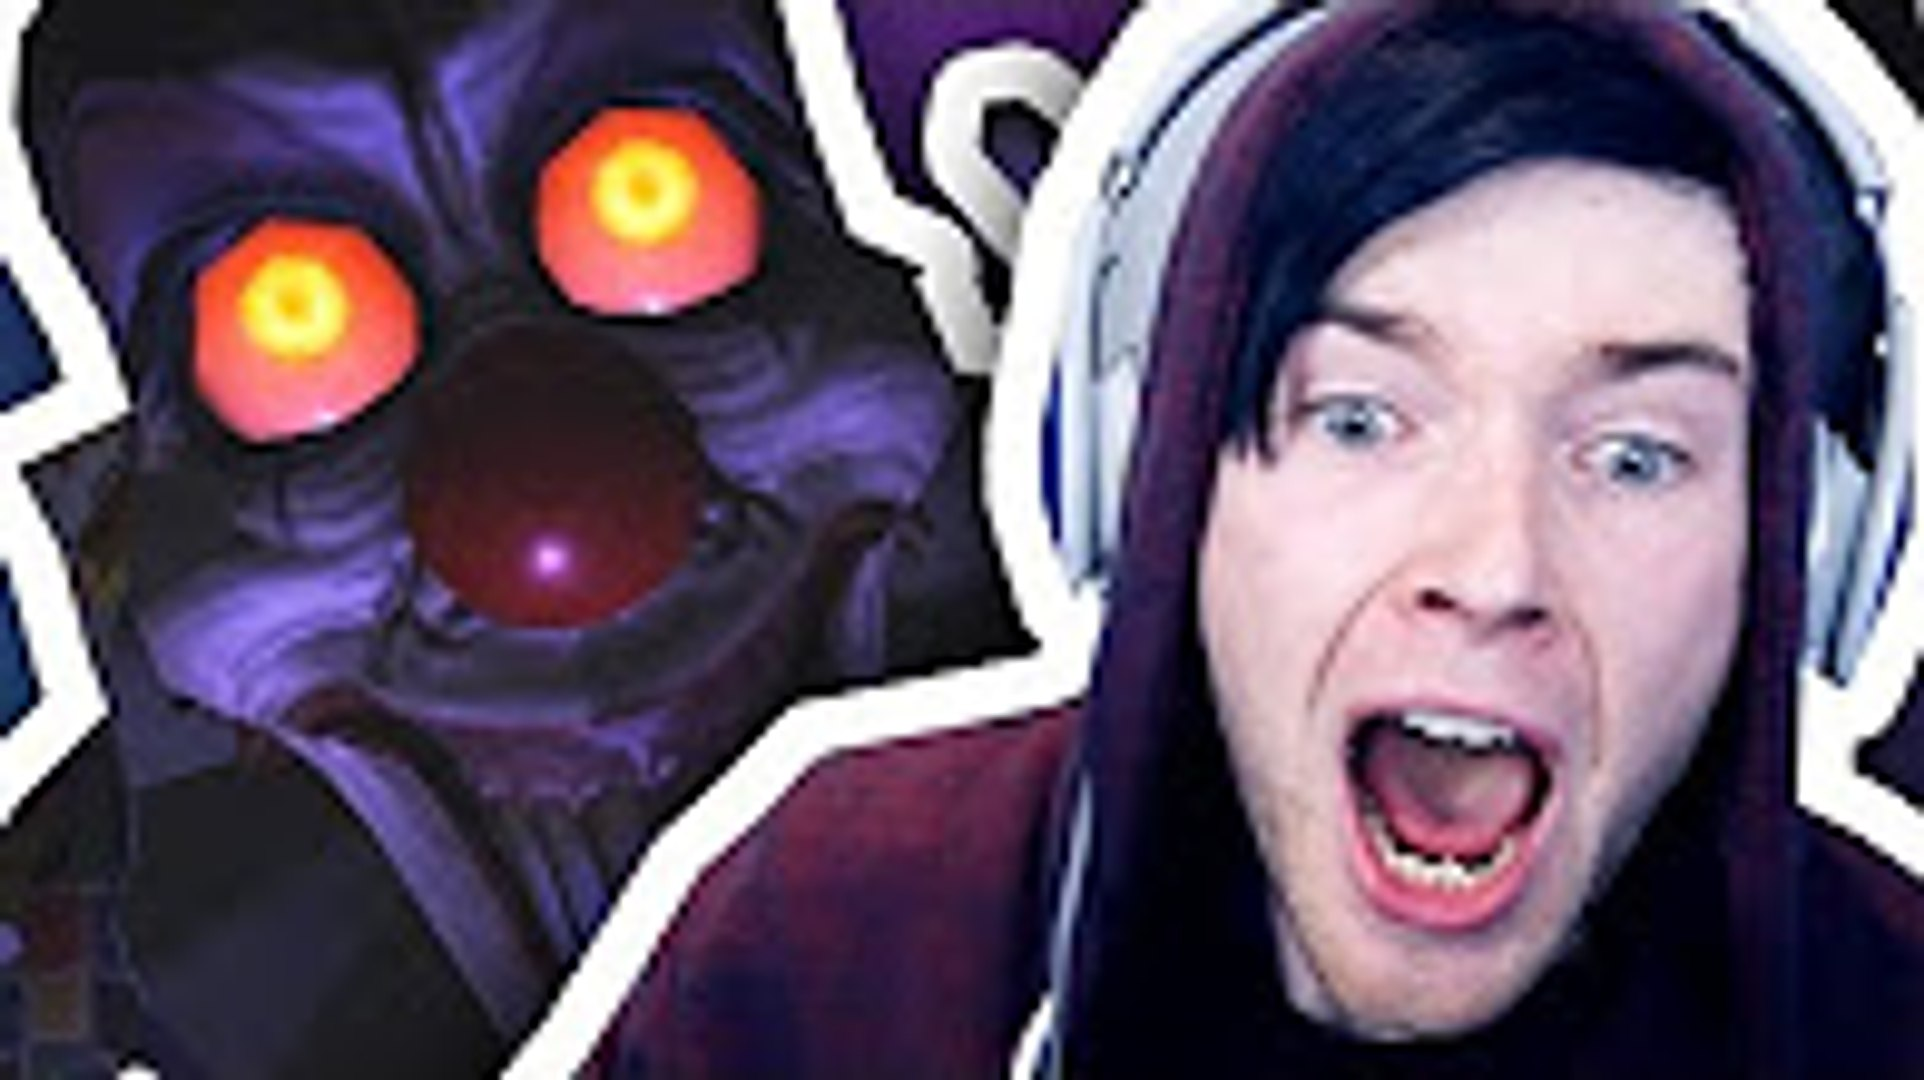 DanTDM DON'T WATCH THIS IF YOU HATE CLOWNS!!! TheDiamondMinecart